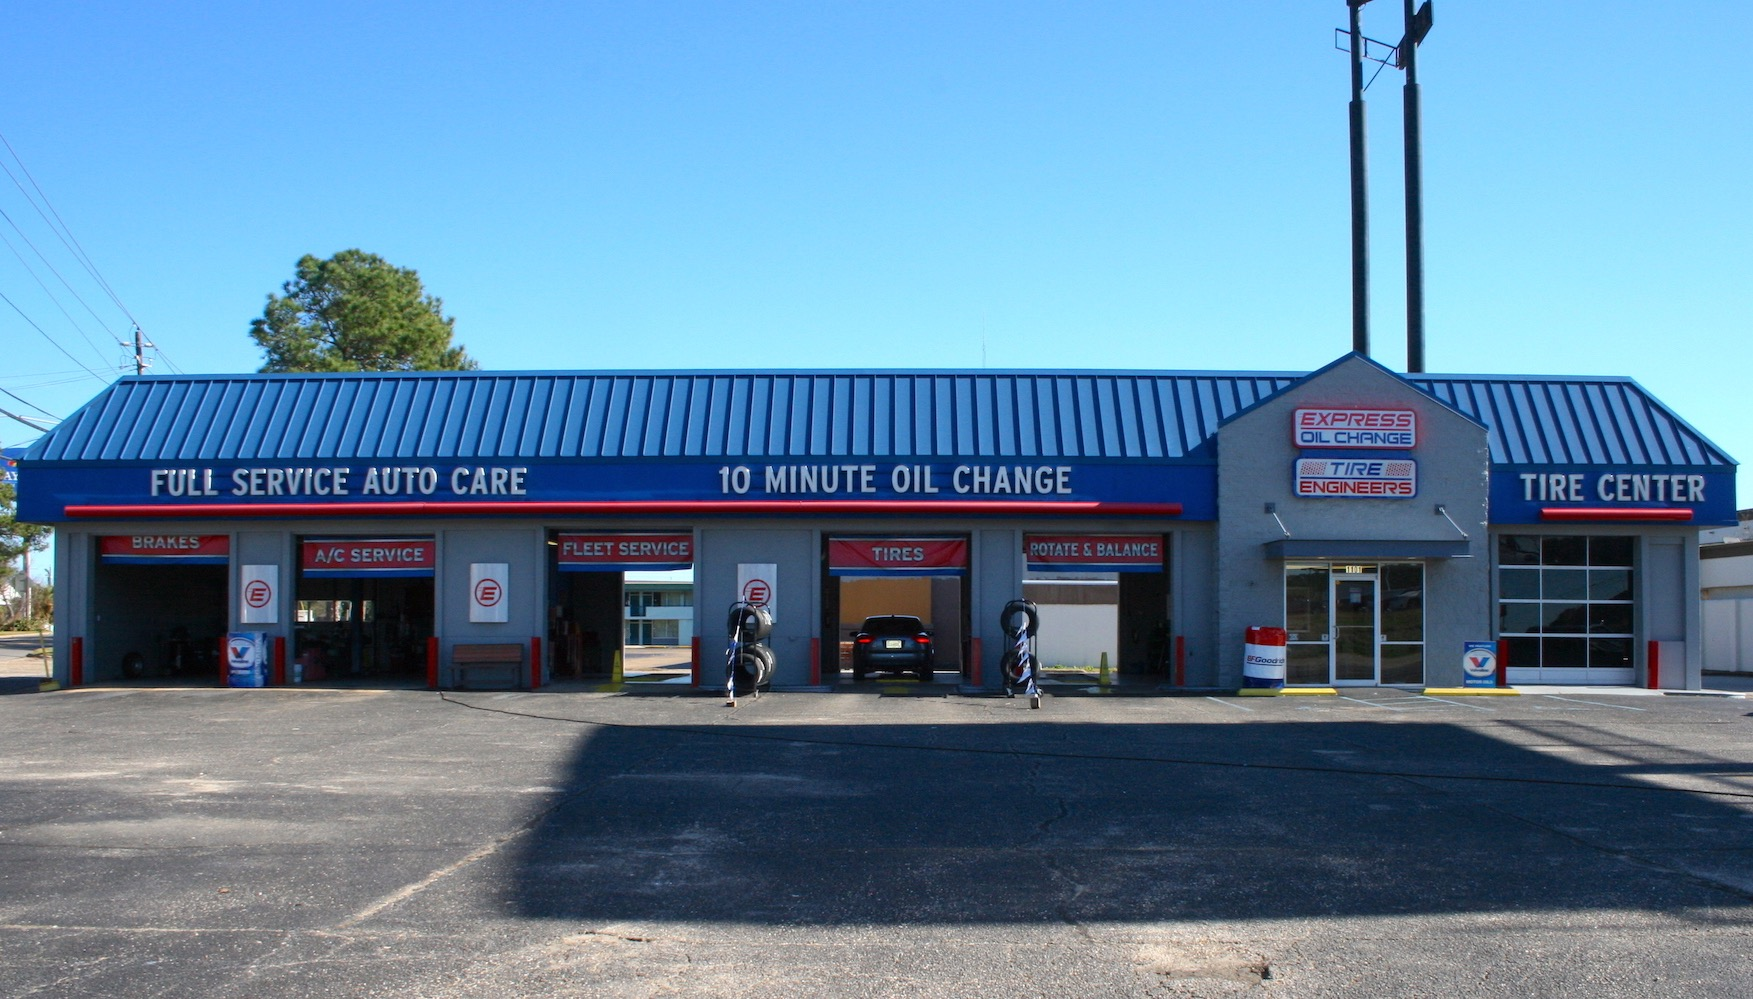 Express Oil Change & Tire Engineers Montgomery, AL - Eastern Bypass store